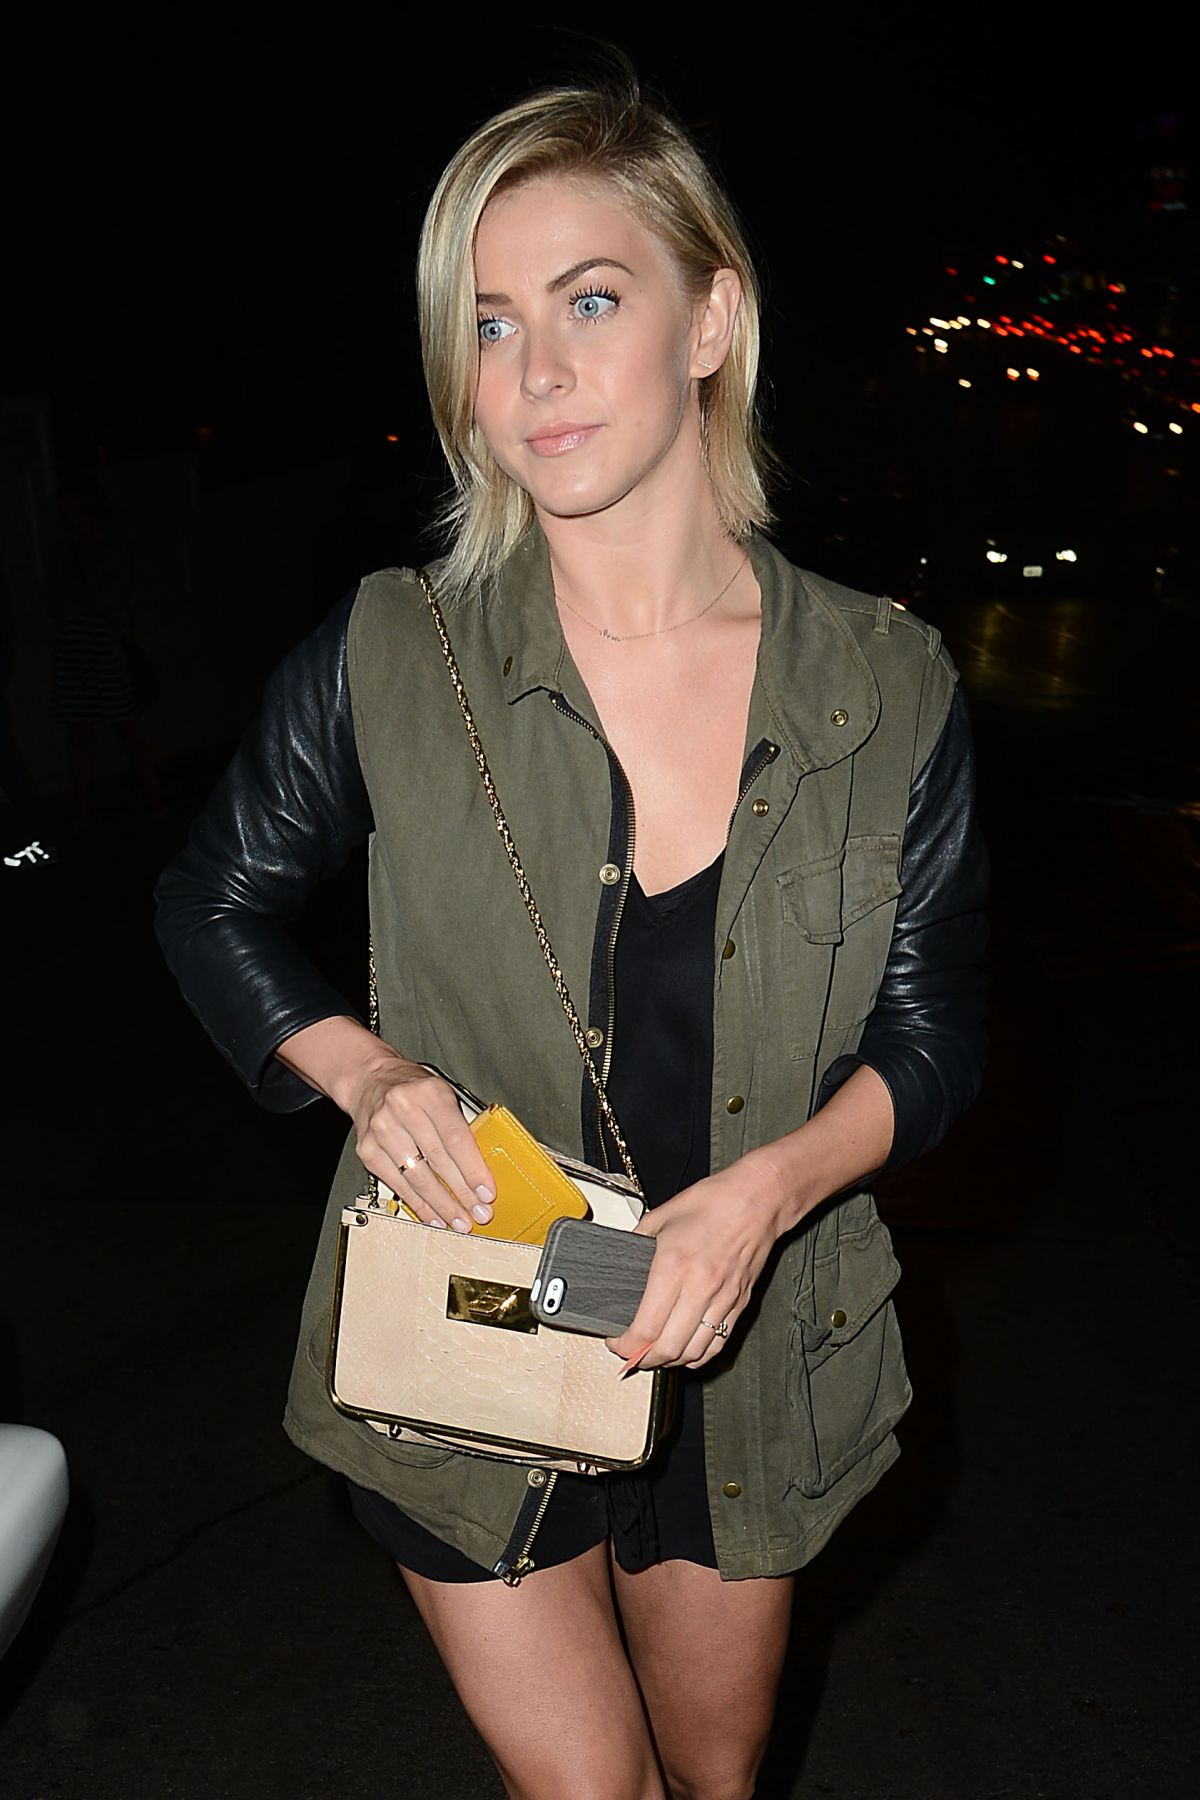 Julianne Hough Leaving The Chateau Marmont In Hollywood